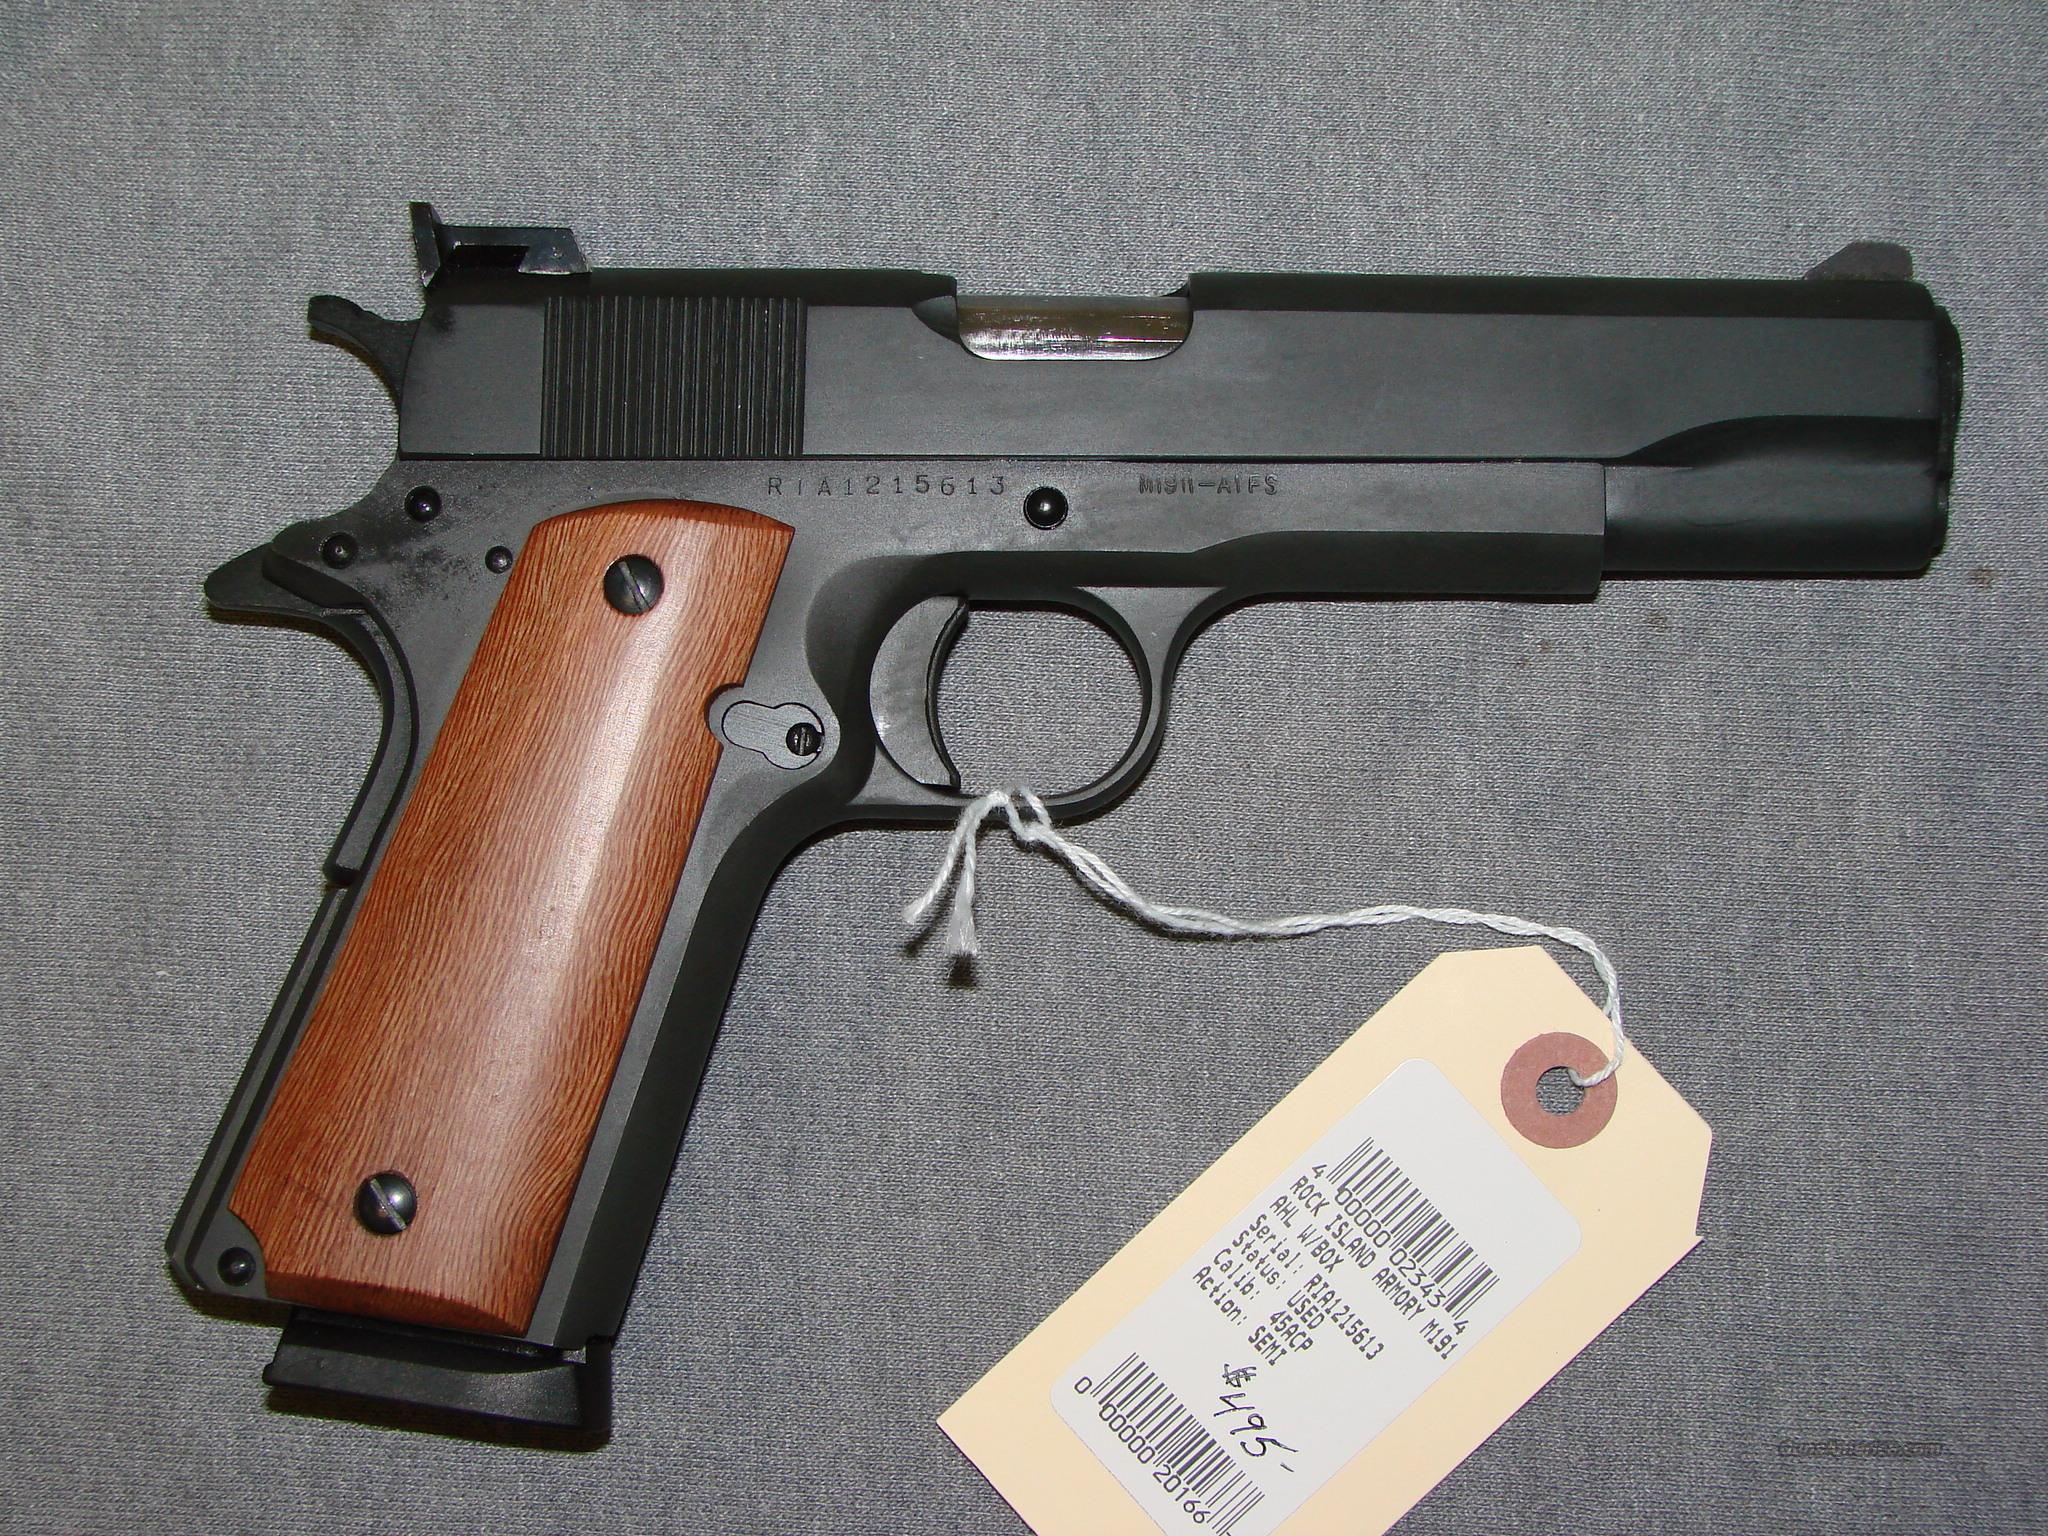 Rock Island 1911  Guns > Pistols > 1911 Pistol Copies (non-Colt)